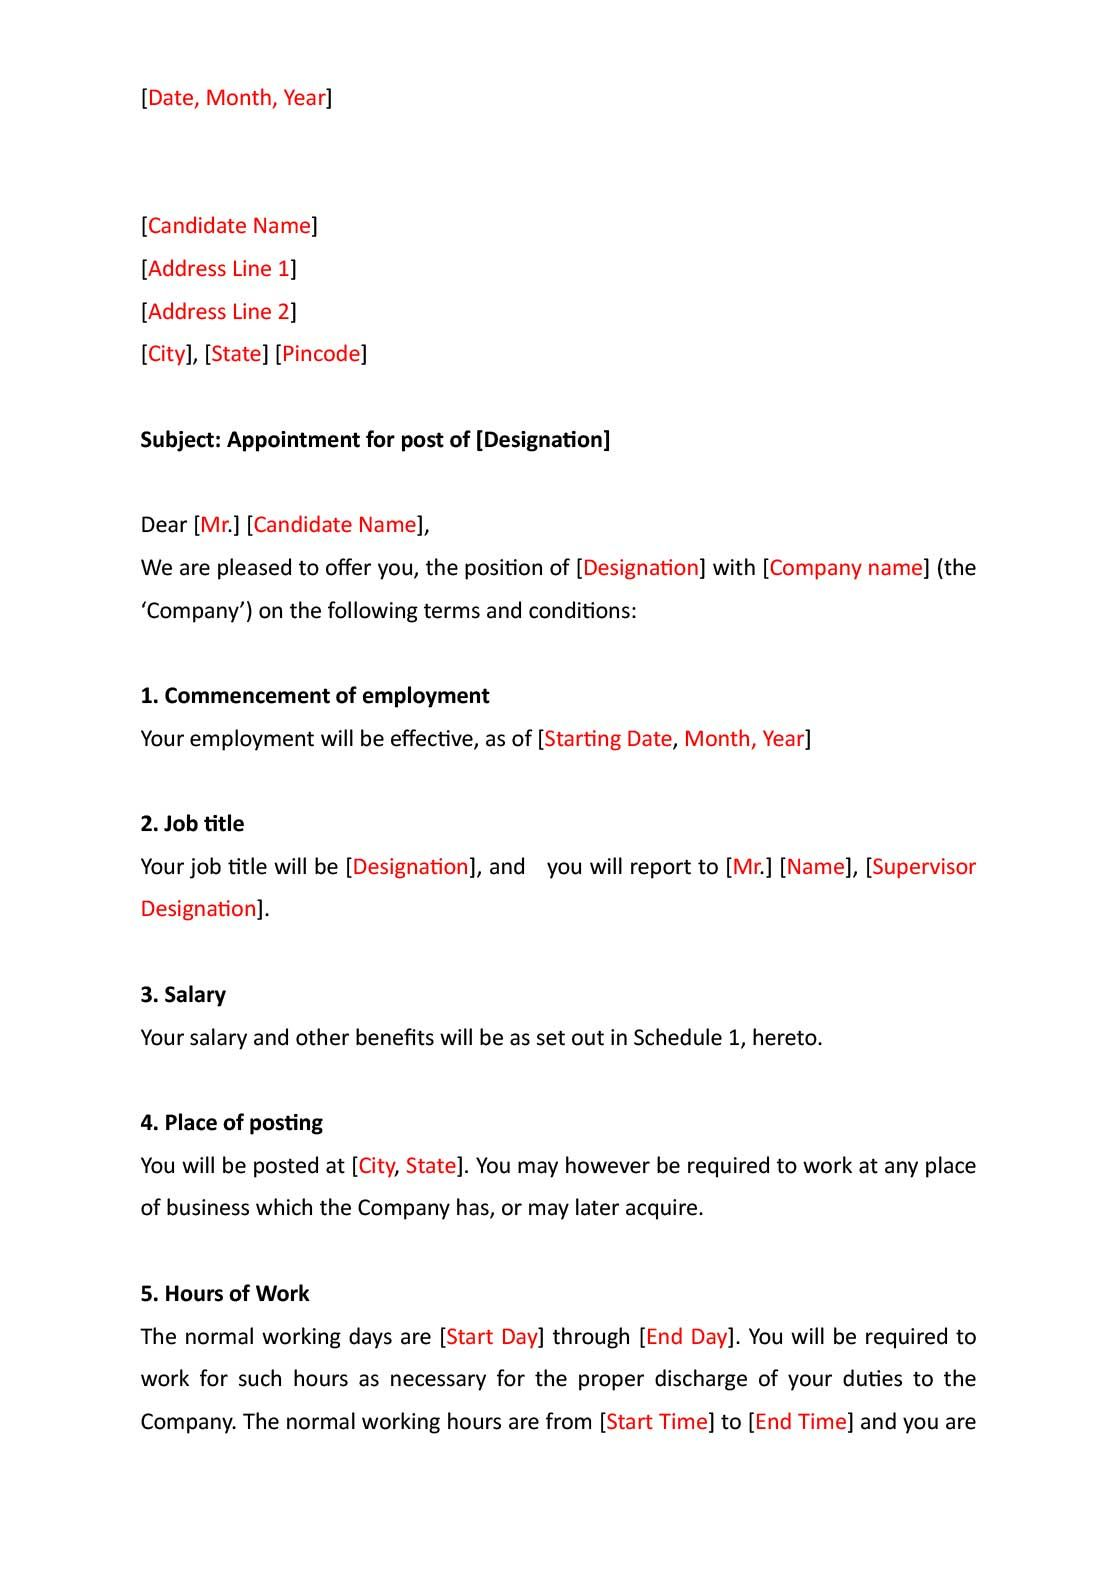 ngo appointment letter format hindi template doc job offer contingent sample customer service